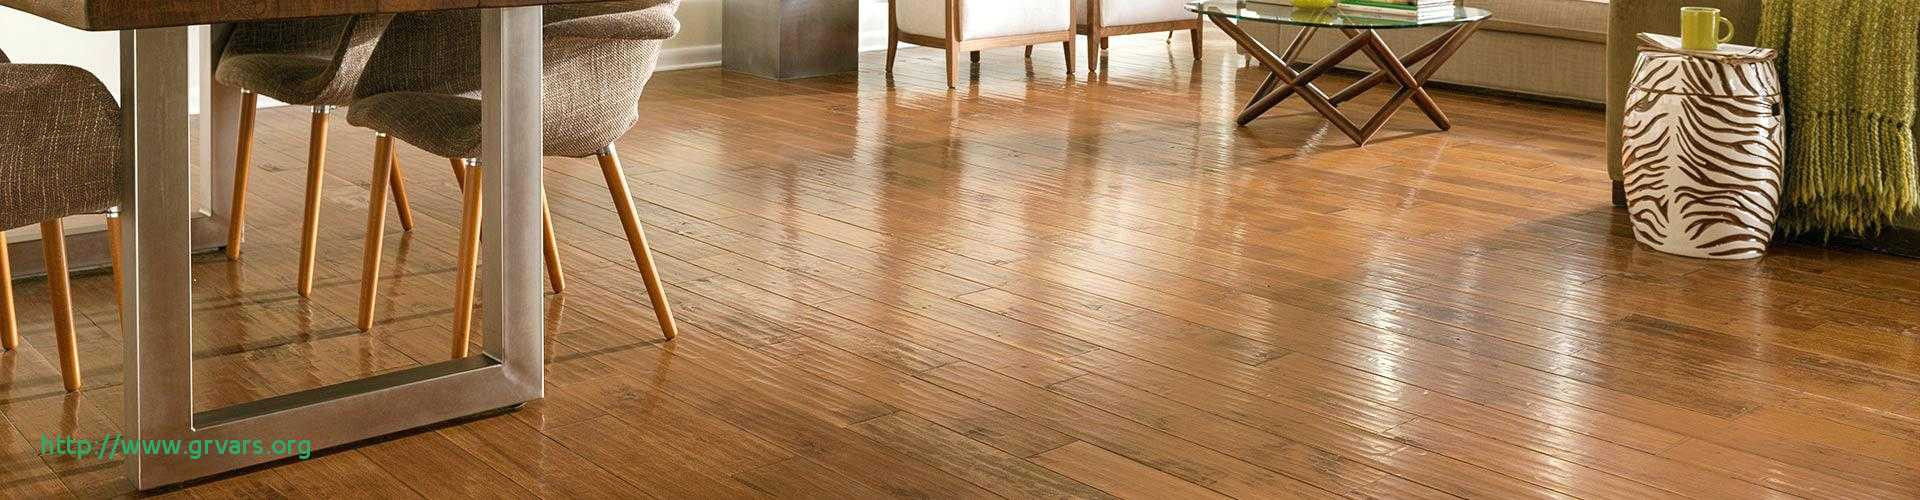 how much is the average cost to install hardwood floors of how much does lowes charge to install hardwood flooring inspirant od regarding how much does lowes charge to install hardwood flooring inspirant od grain tile bathroom wood shower no grout porcelain pros and cons